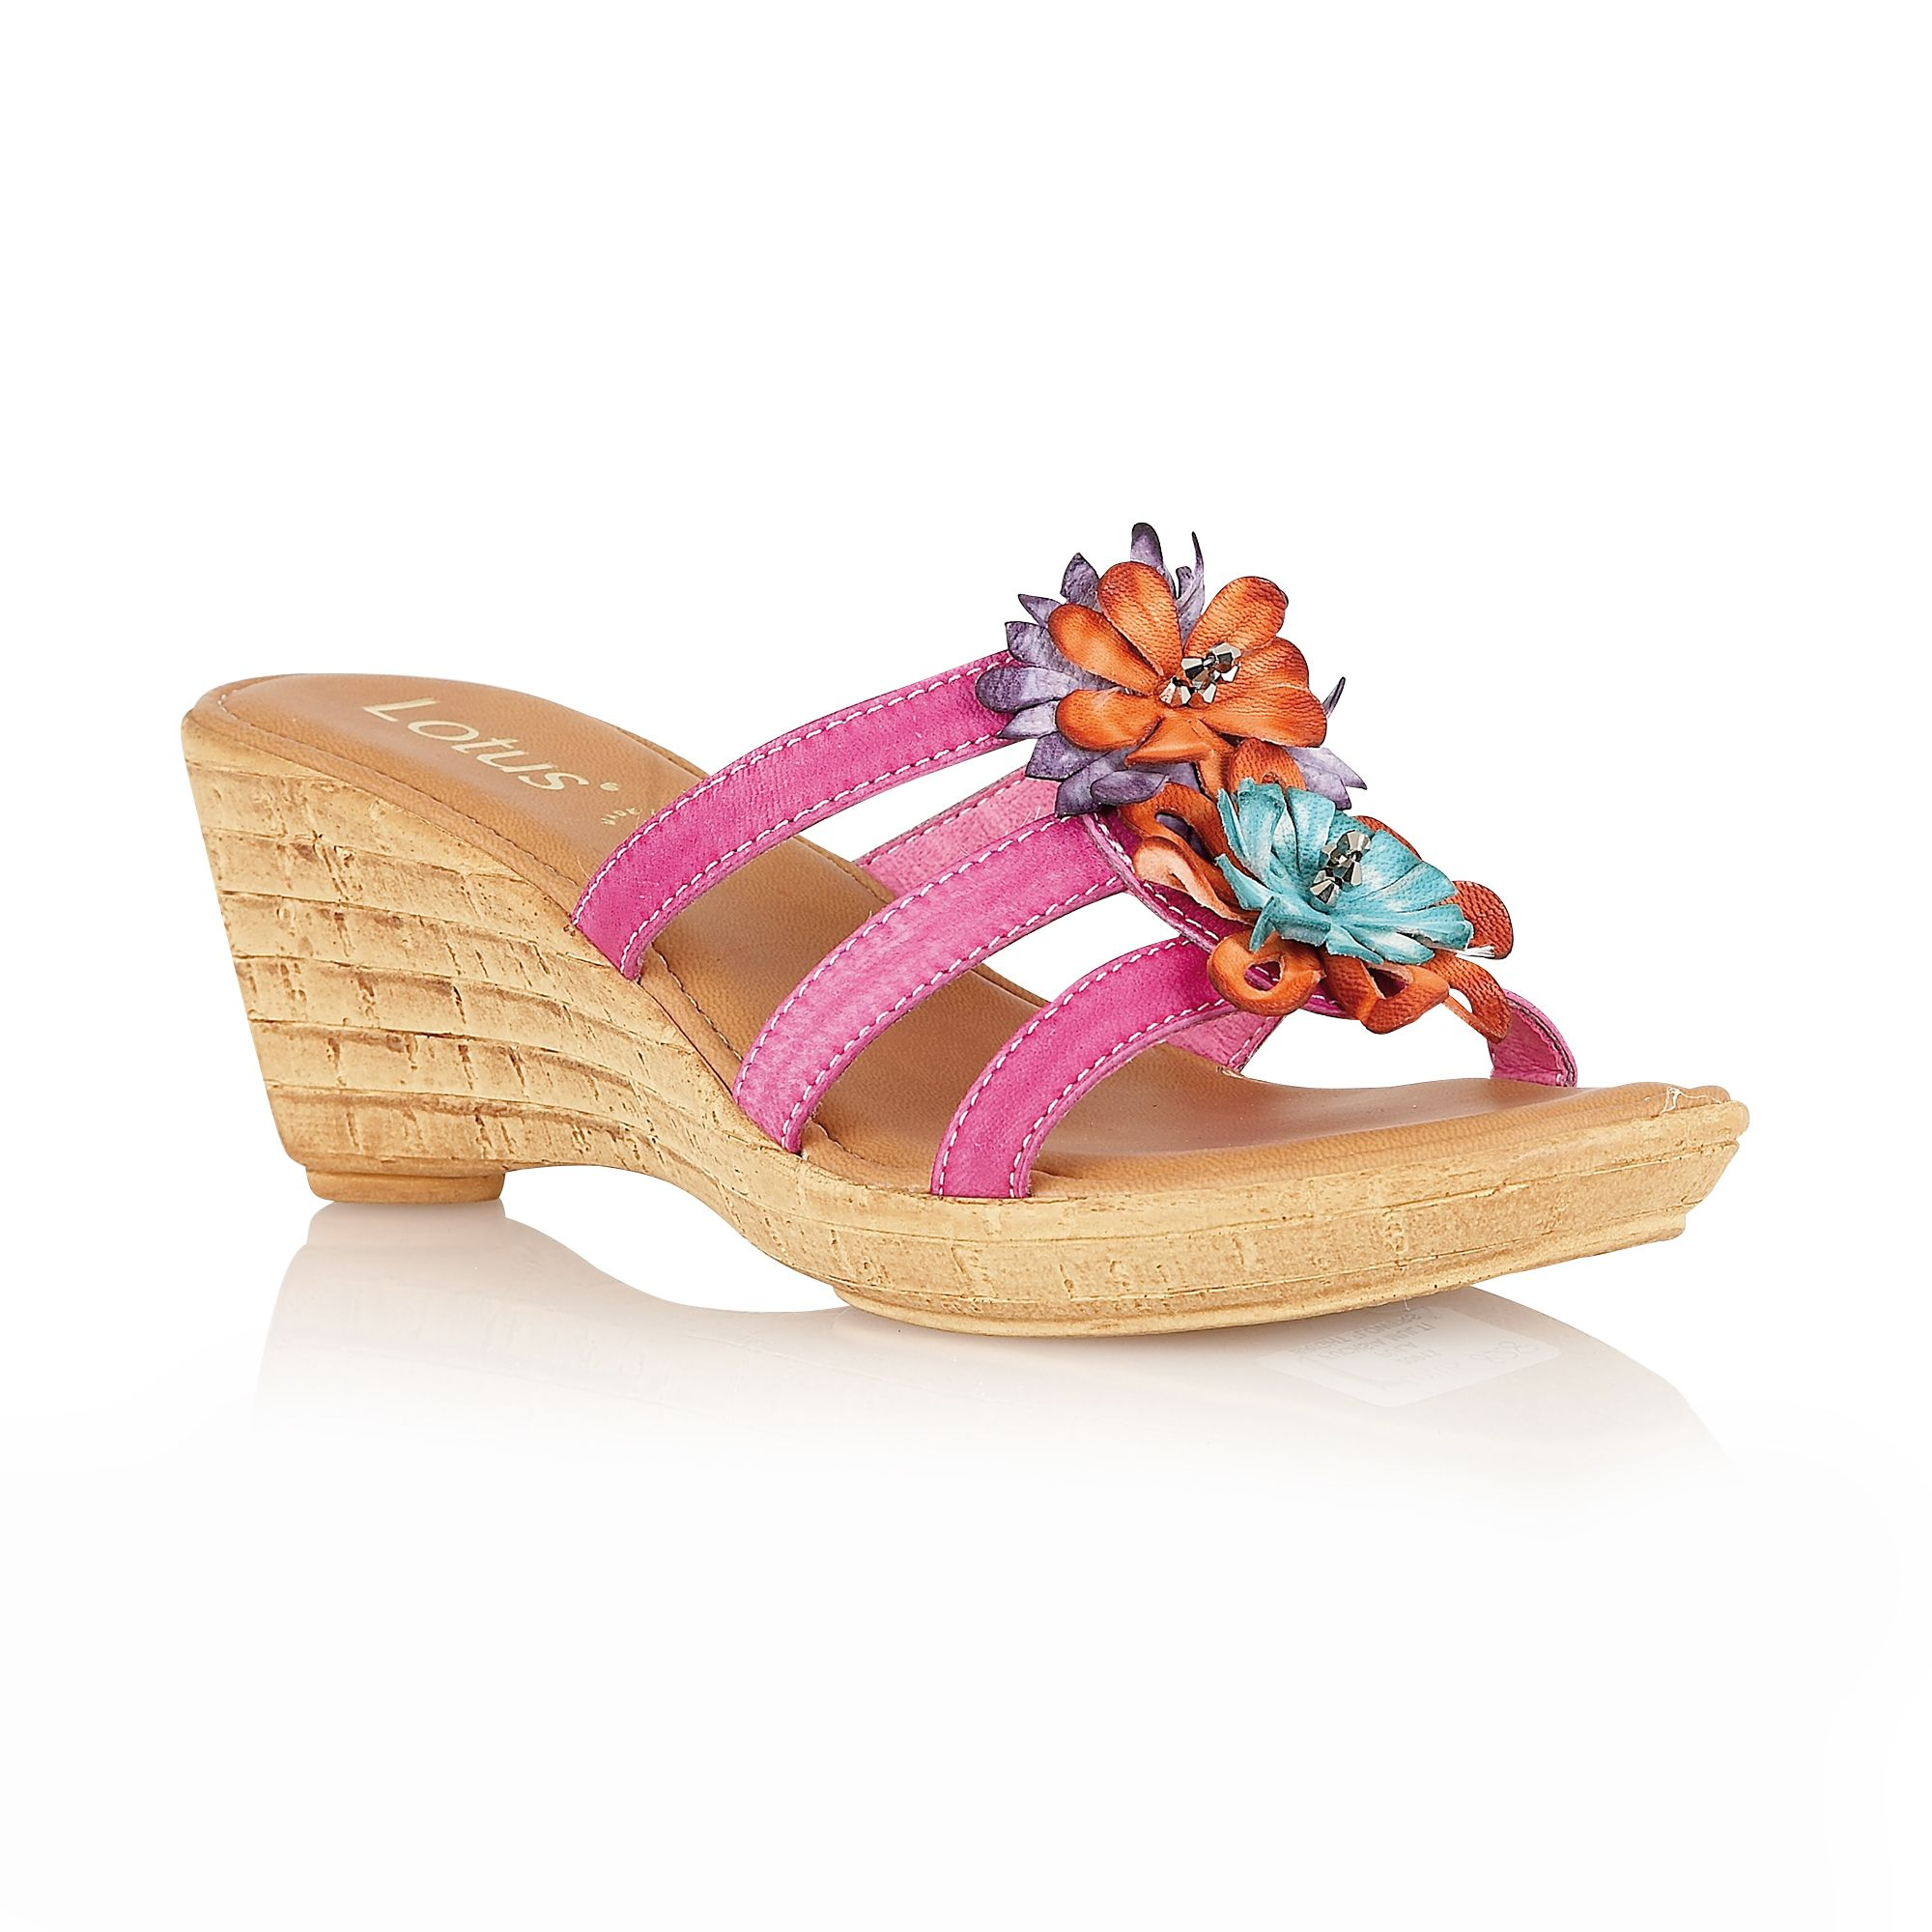 Pula casual sandals